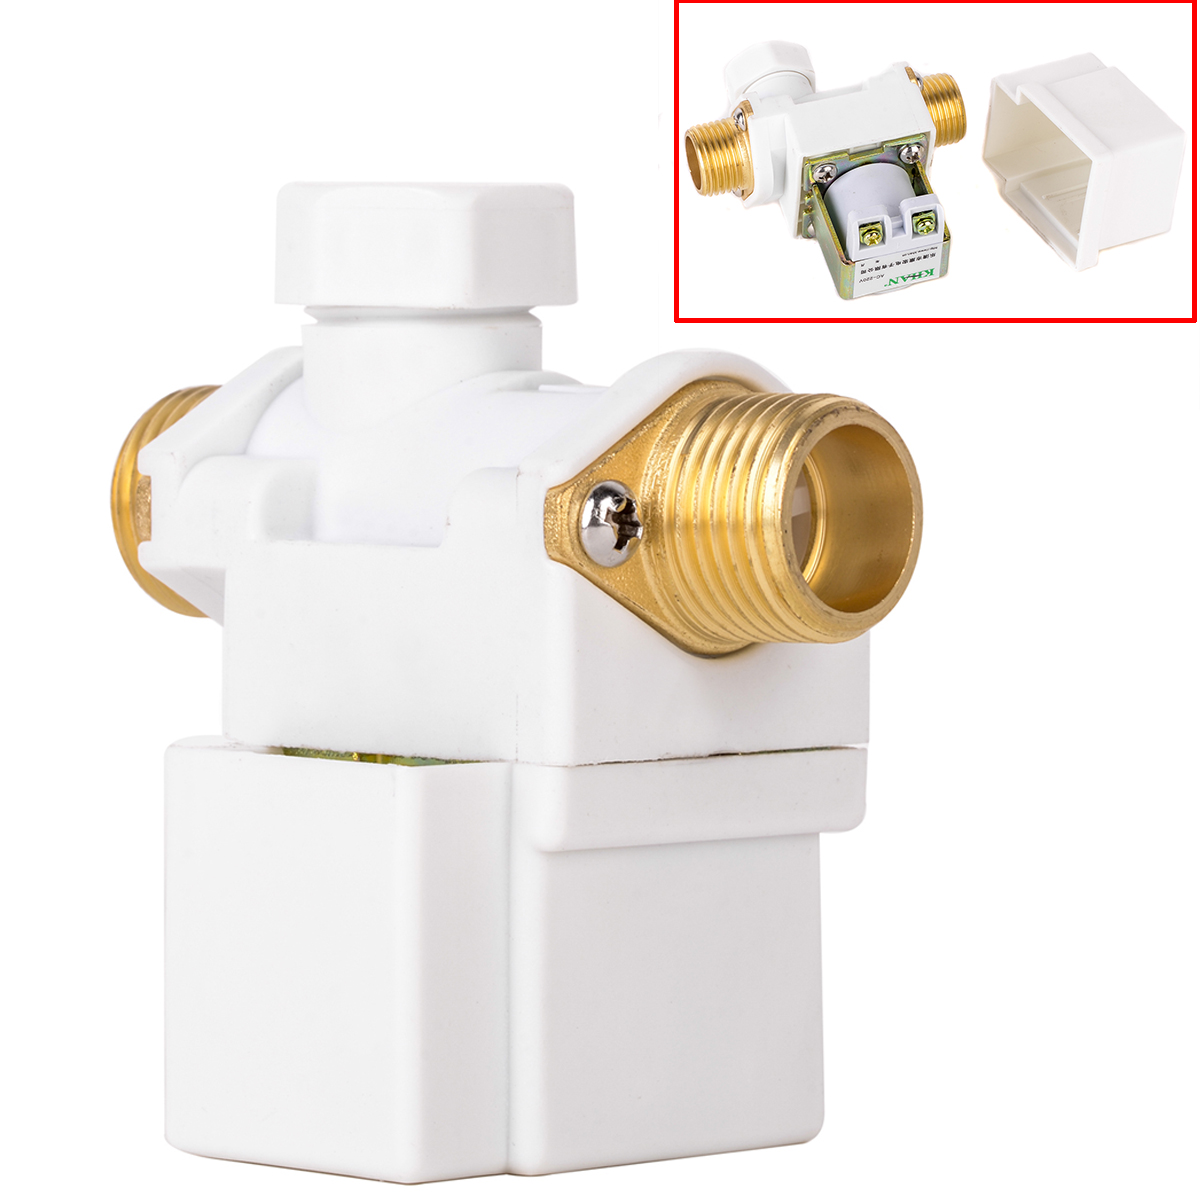 1pc New Mayitr Durable 1/2 Brass Diaphragm Electric Solenoid Valve For AC 220V Water Air N/C Normally Closed Solenoid Valves